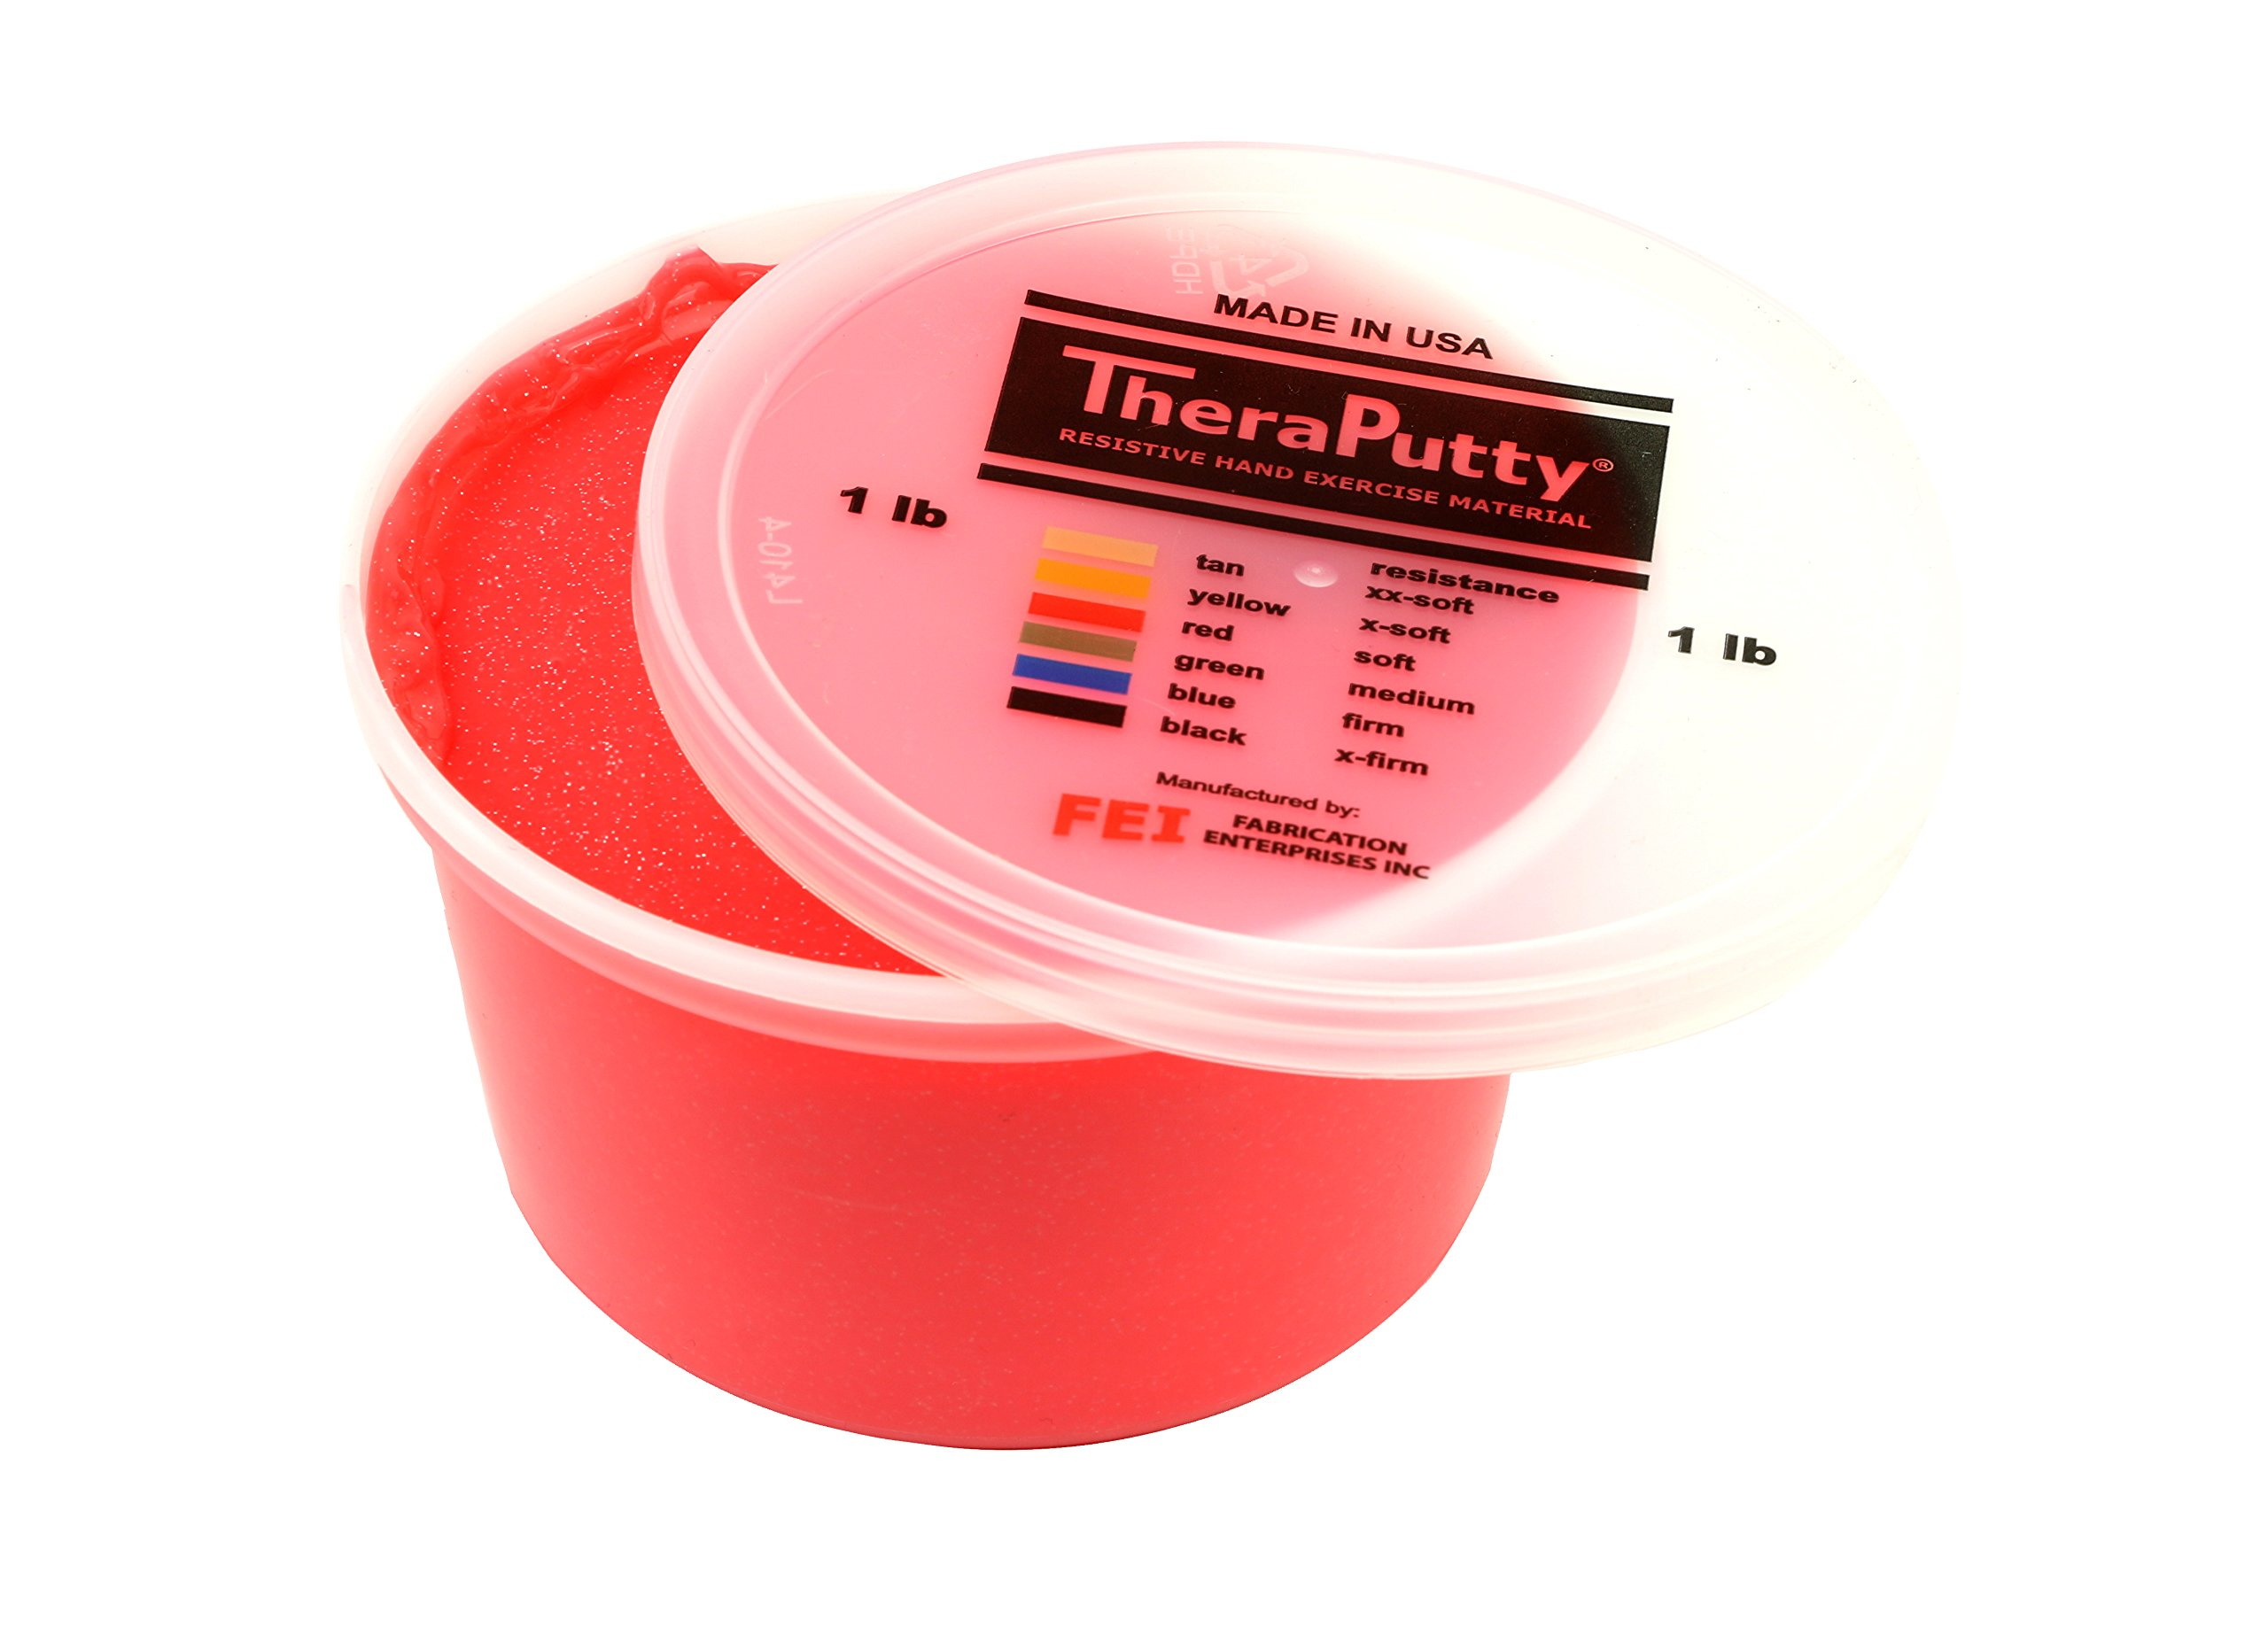 CanDo Sparkle Theraputty - 1 lb - Red - Soft by Cando